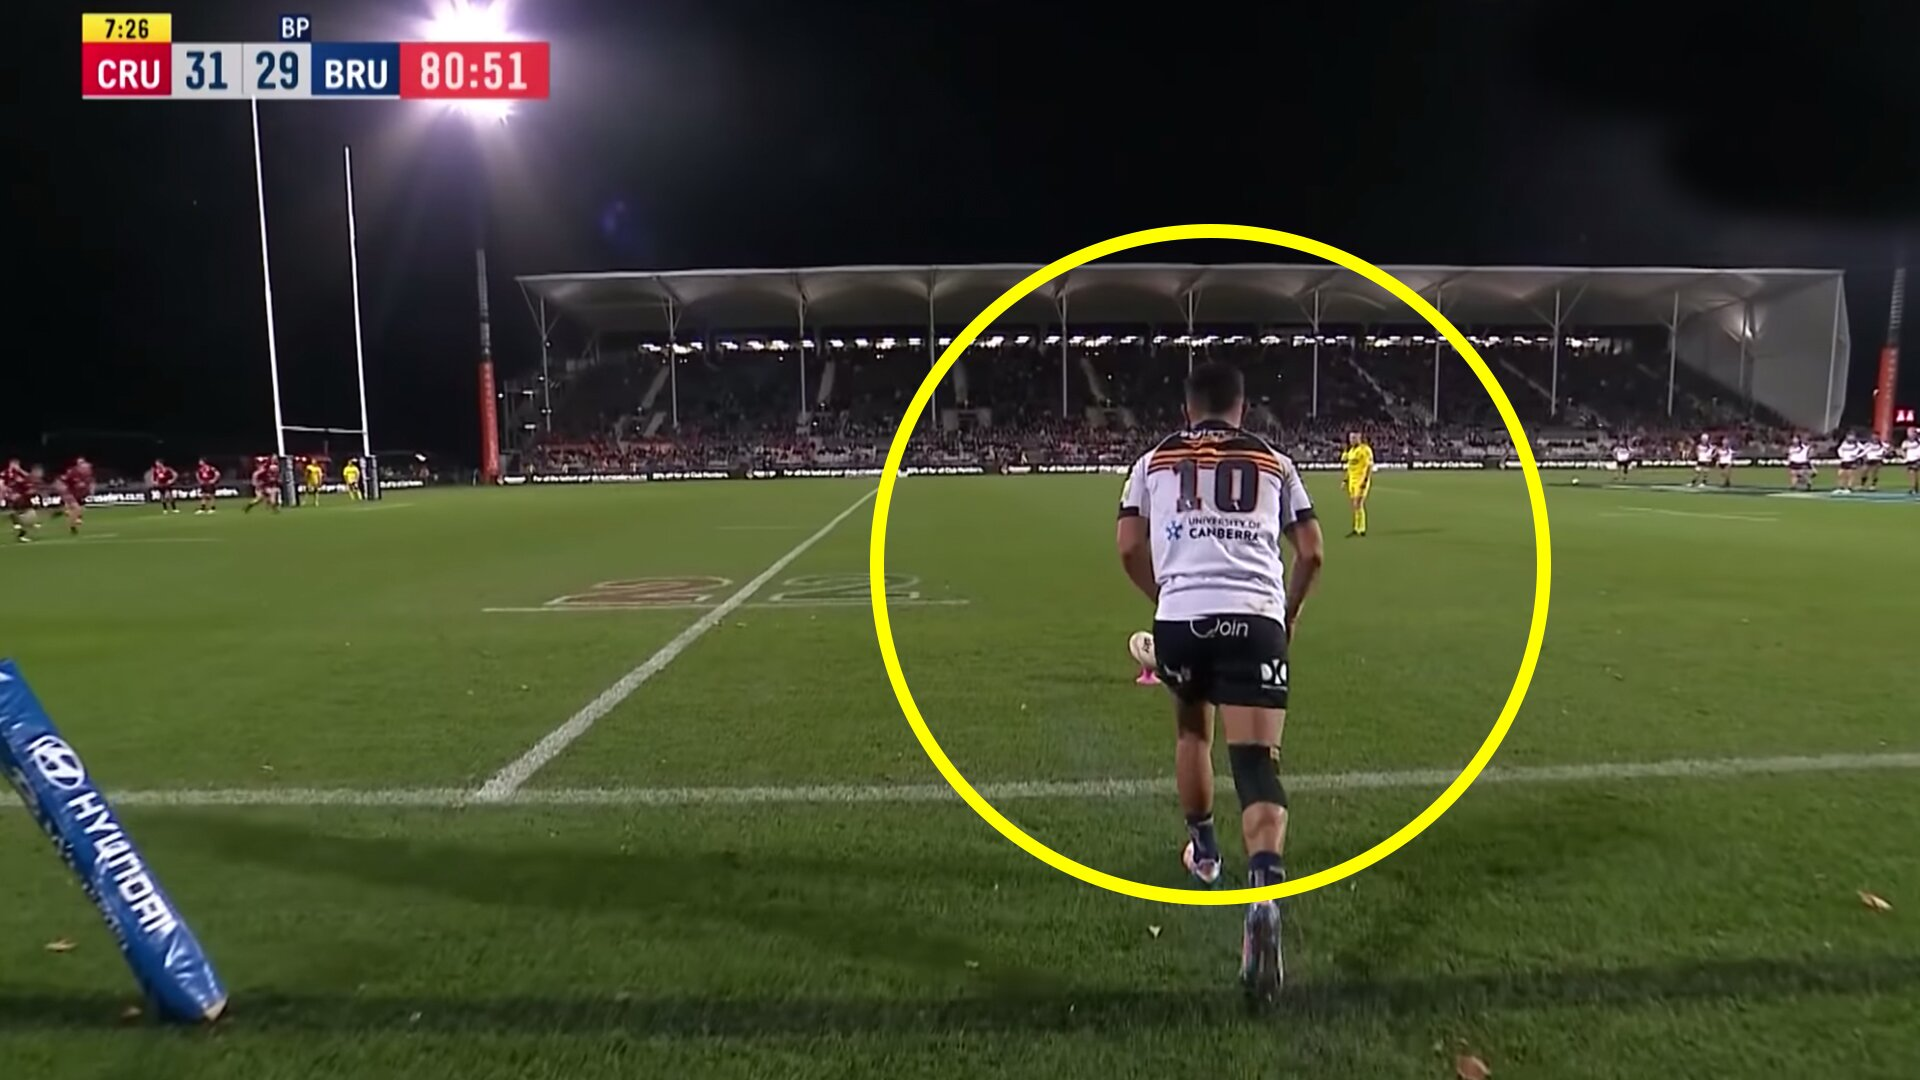 Fans stunned by the way players treated Brumbies kicker after he misses kick to draw game